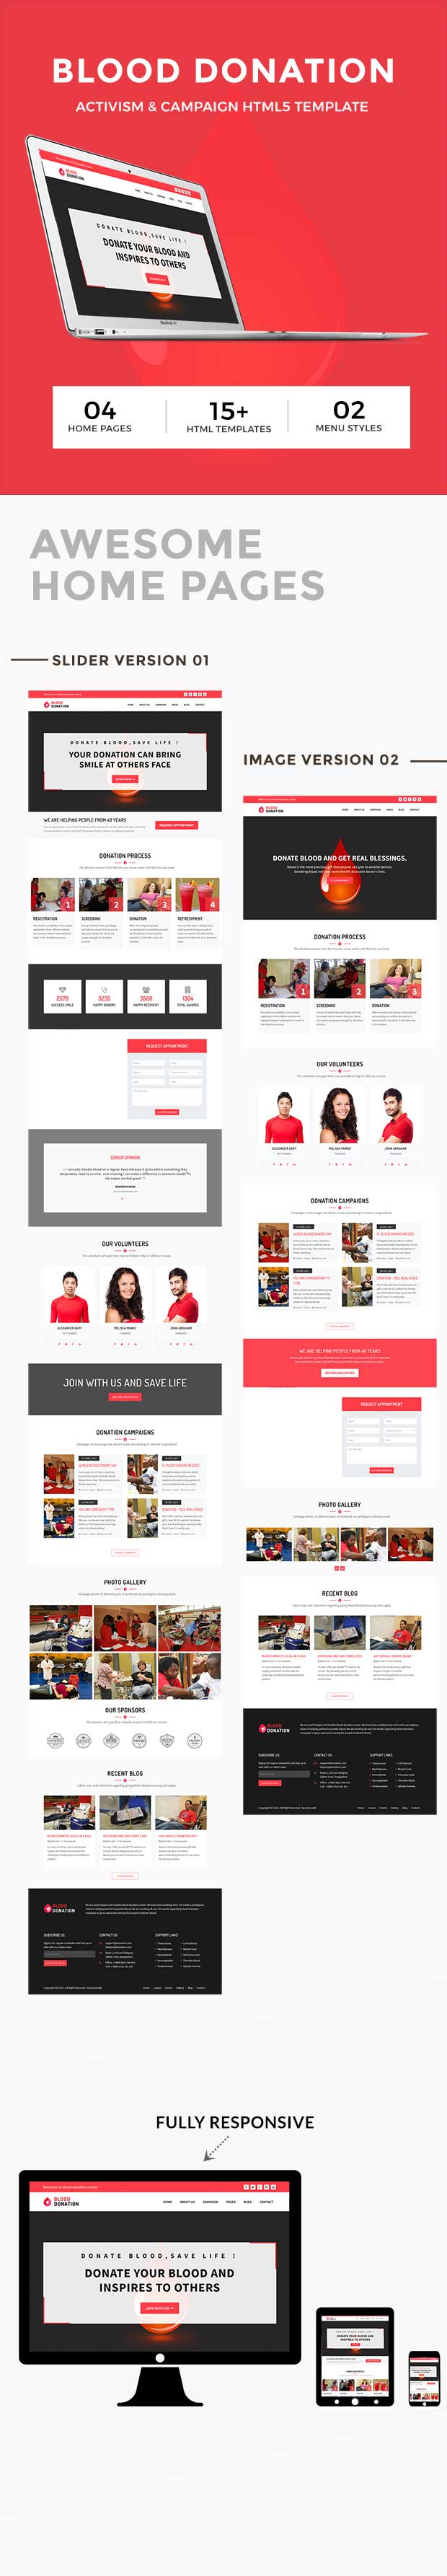 blood donation activism campaign html5 template by xenioushk